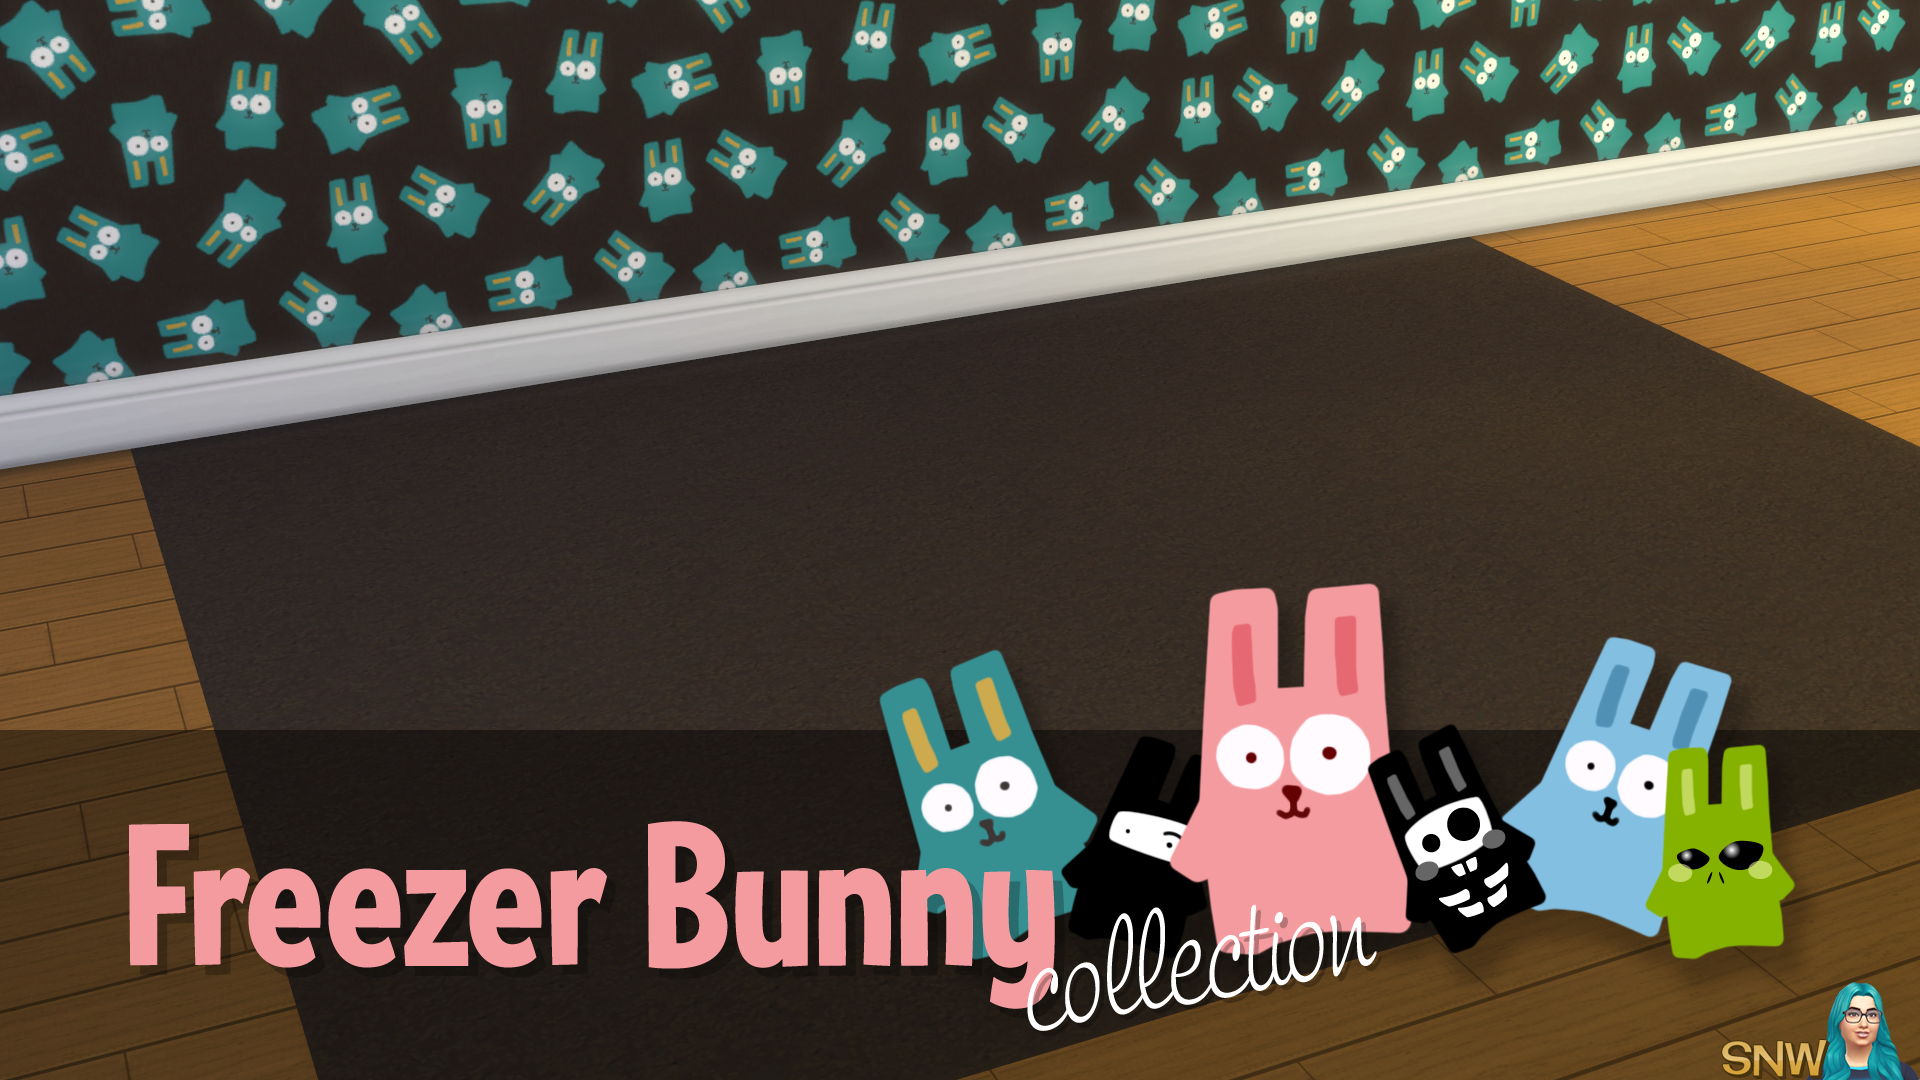 Freezer Bunny Collection: Carpets